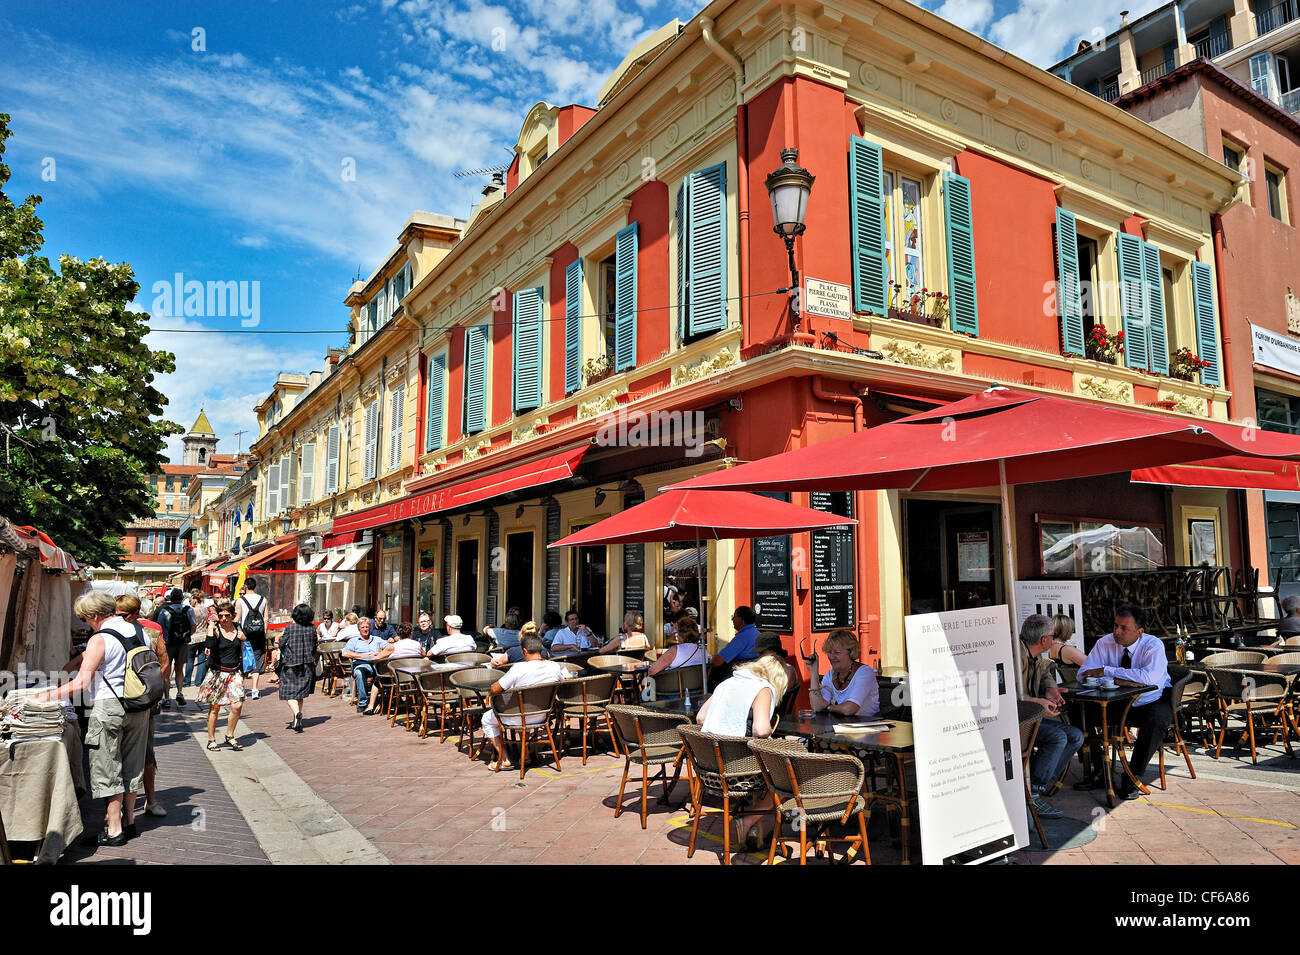 the flower market in the old town nice france stock photo 43780358 alamy. Black Bedroom Furniture Sets. Home Design Ideas